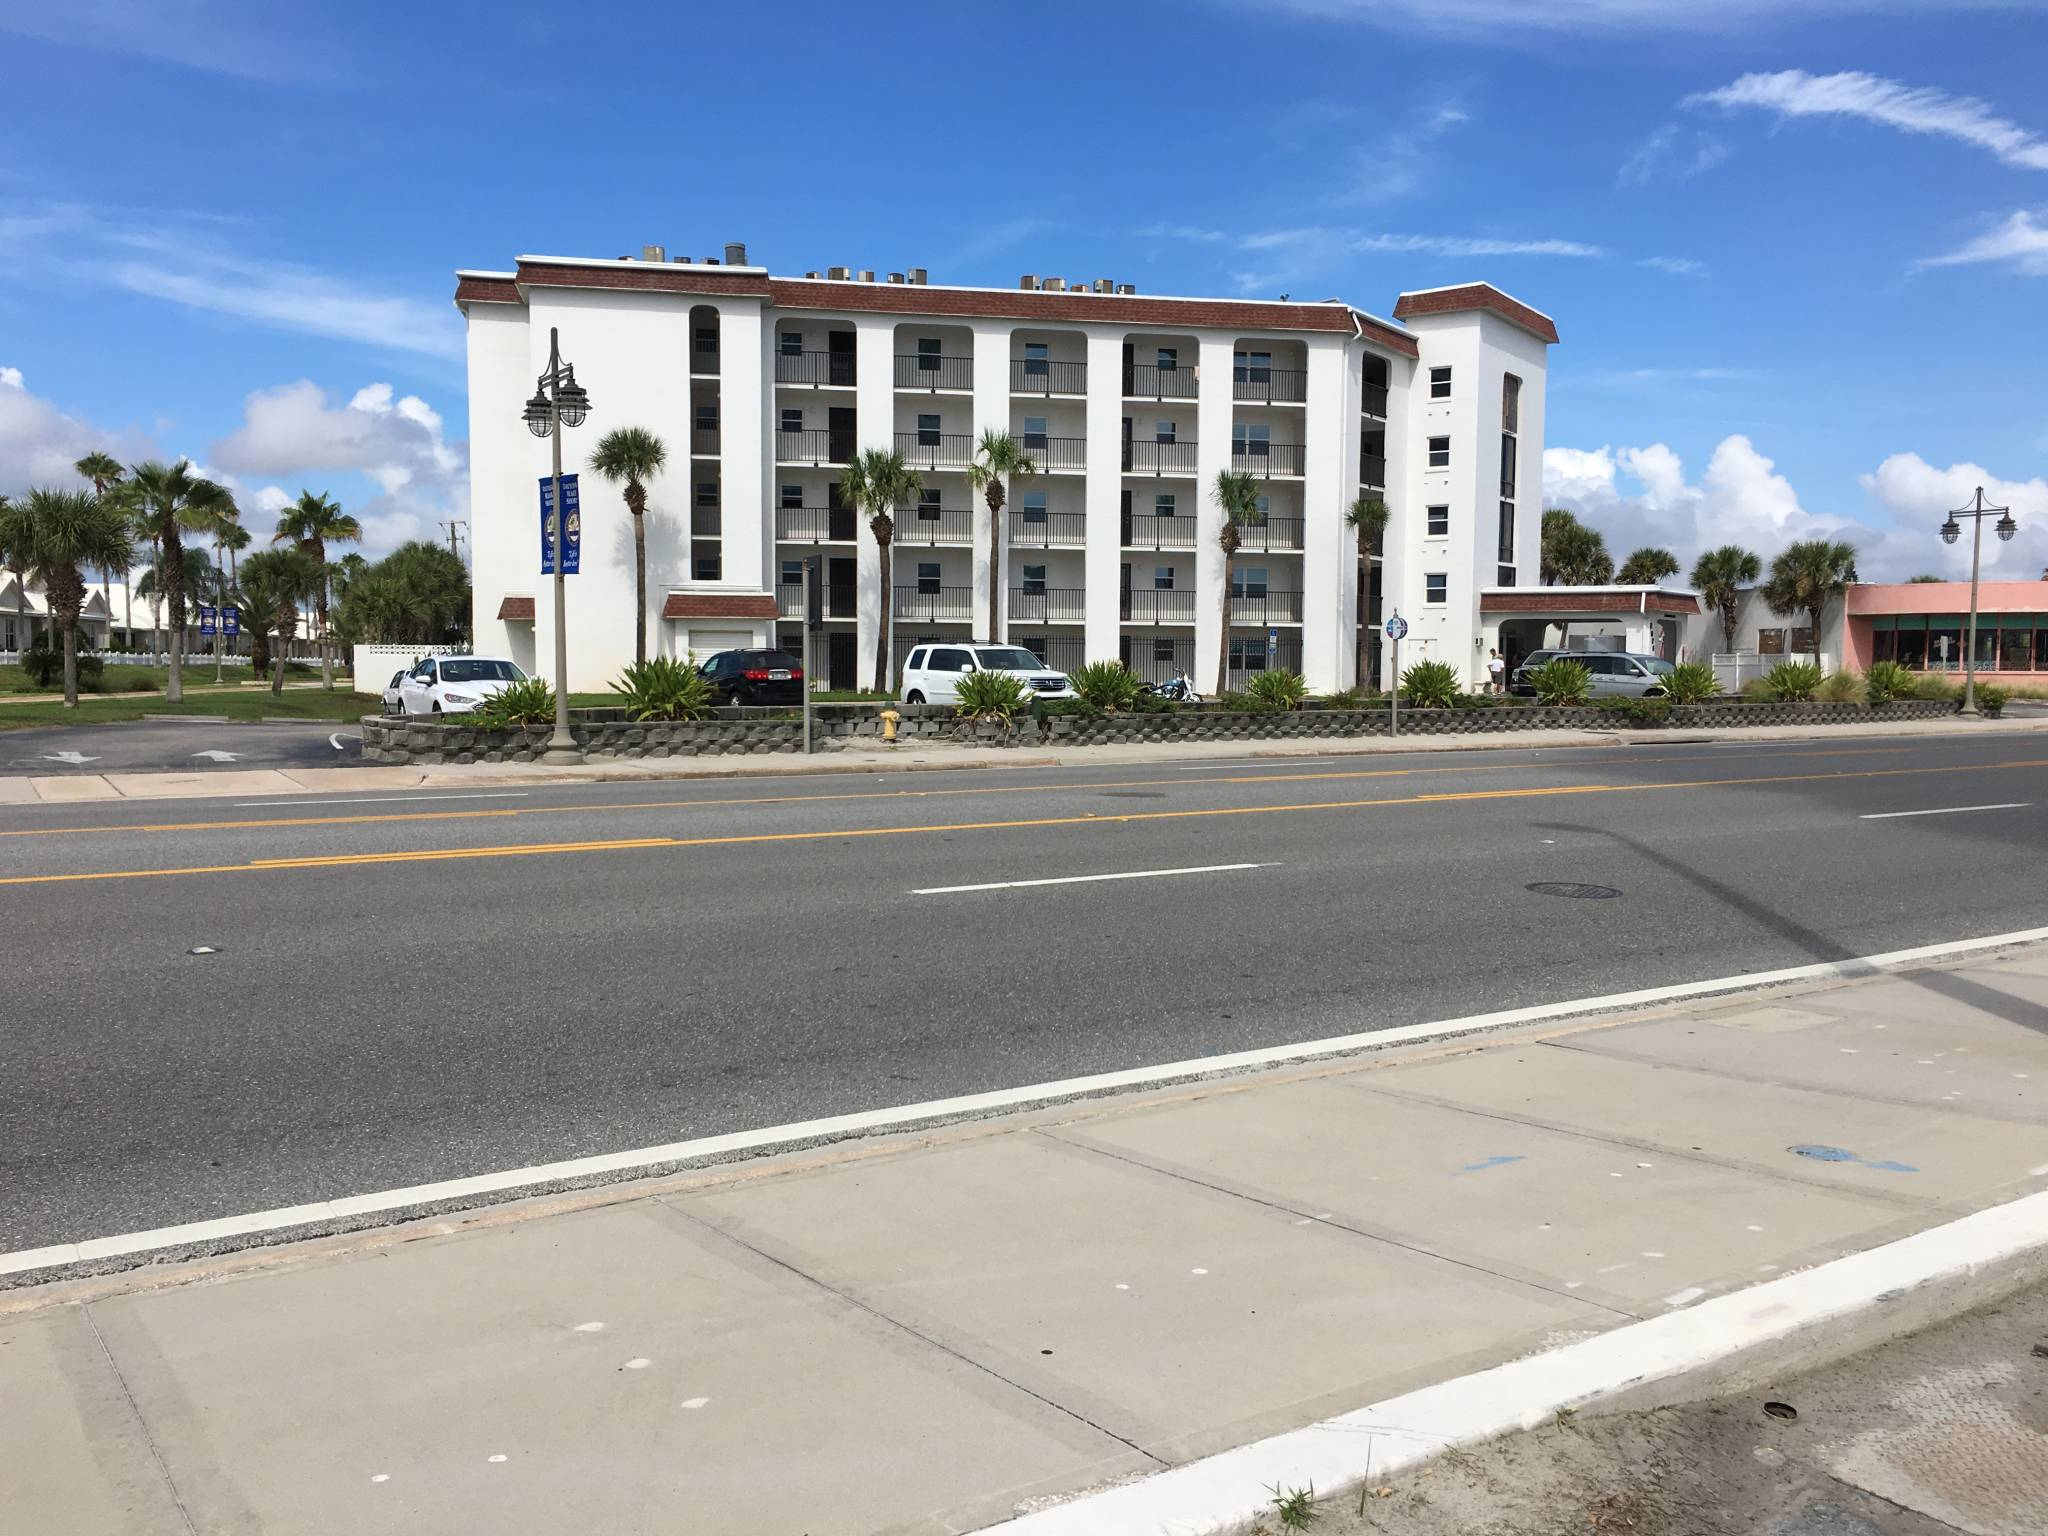 So Atlantic Ave Daytona Beach Shores Condo